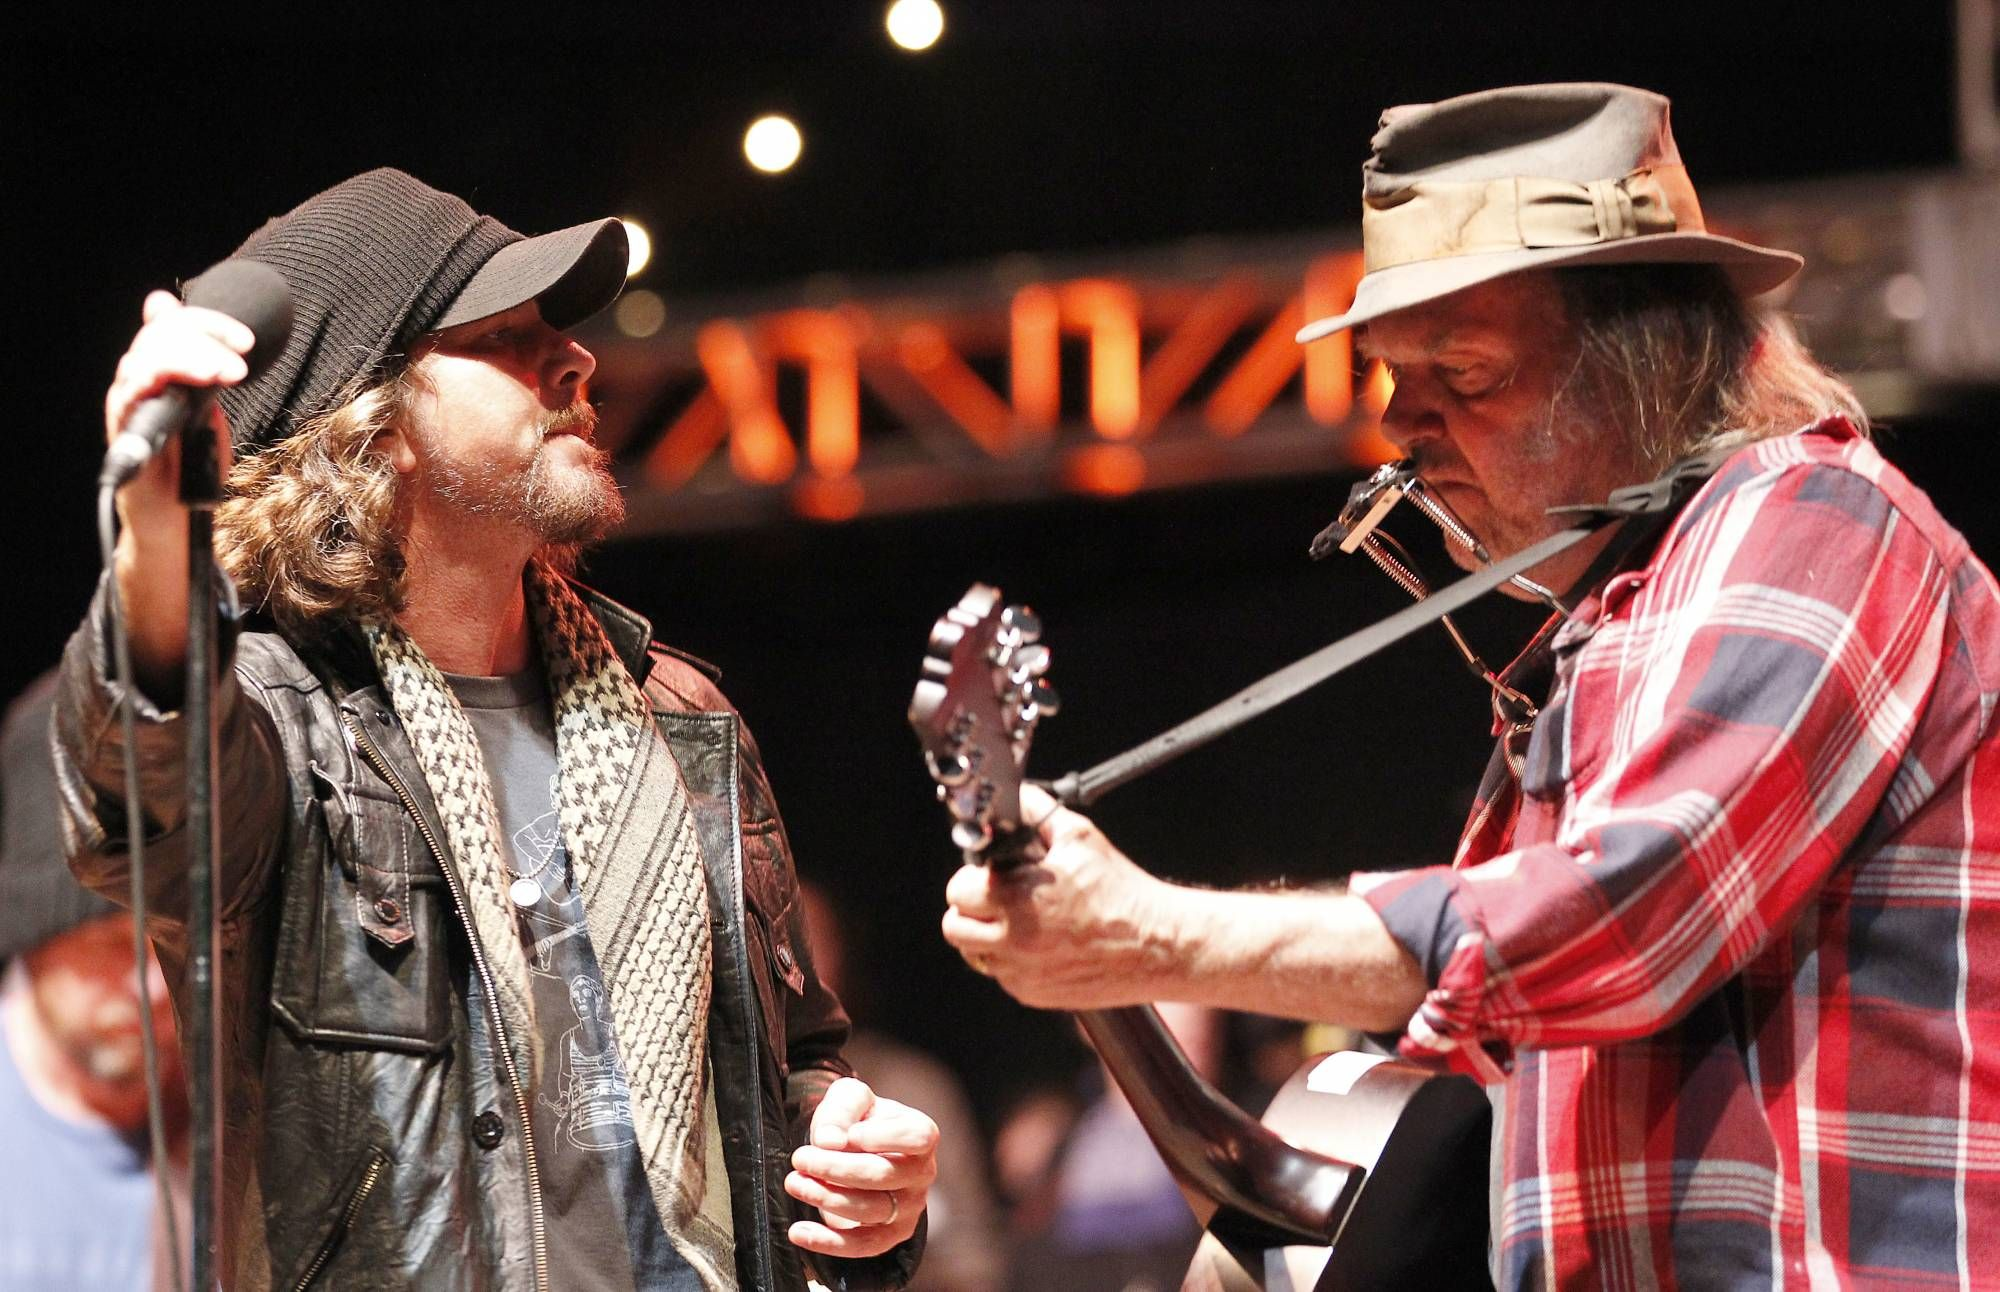 Neil Young to induct Pearl Jam into Rock Hall | Pearl jam ...